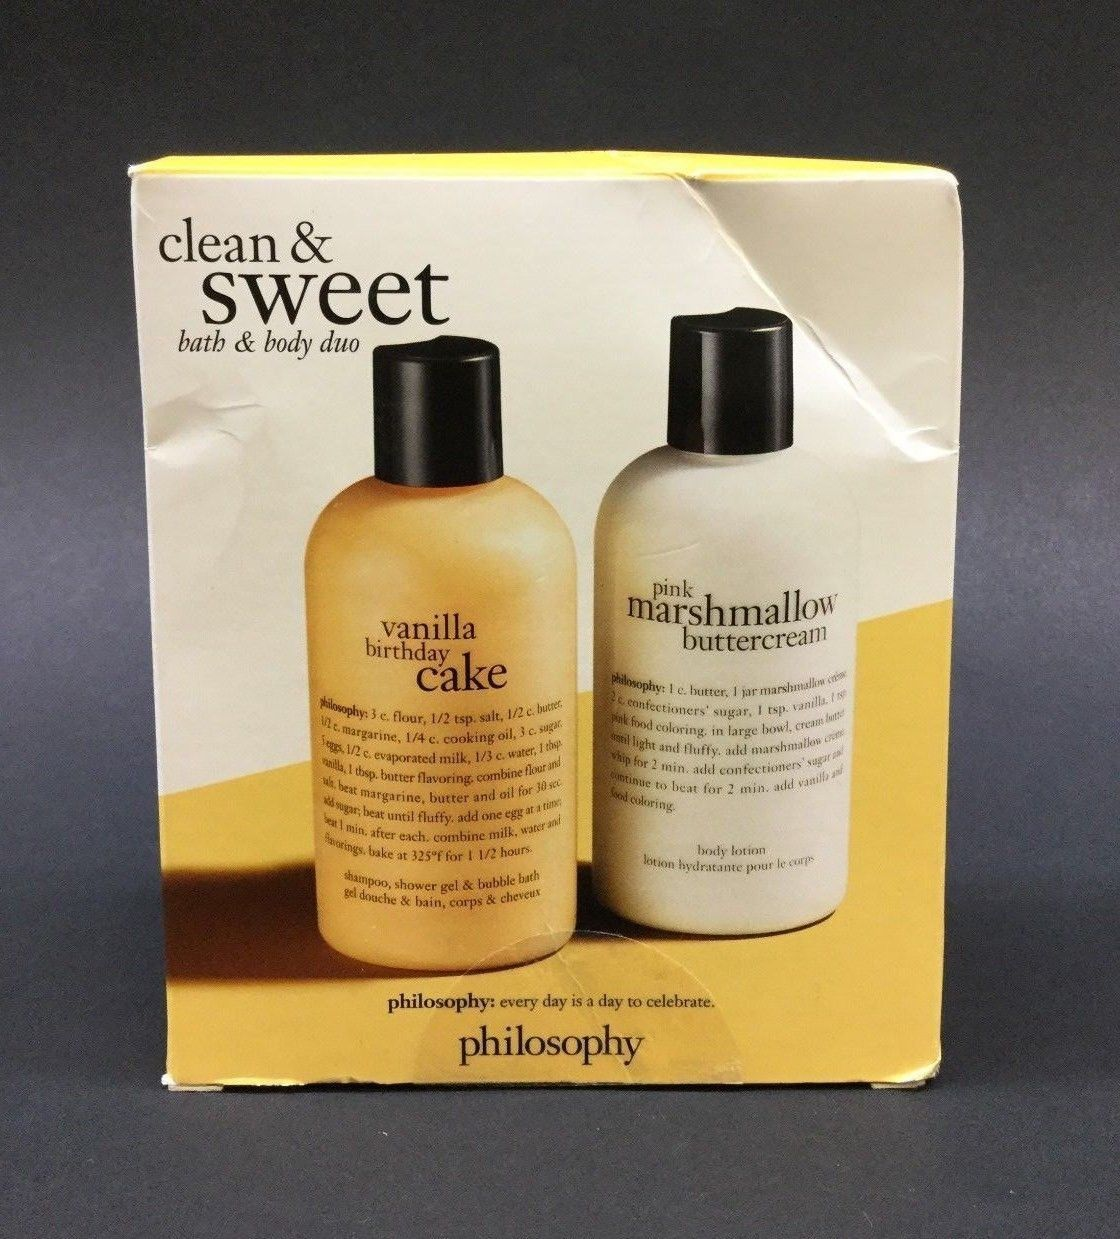 Happy Birthday Cakes Body Washes And Shower Gels 31754 Philosophy Clean Sweet Bath Duo